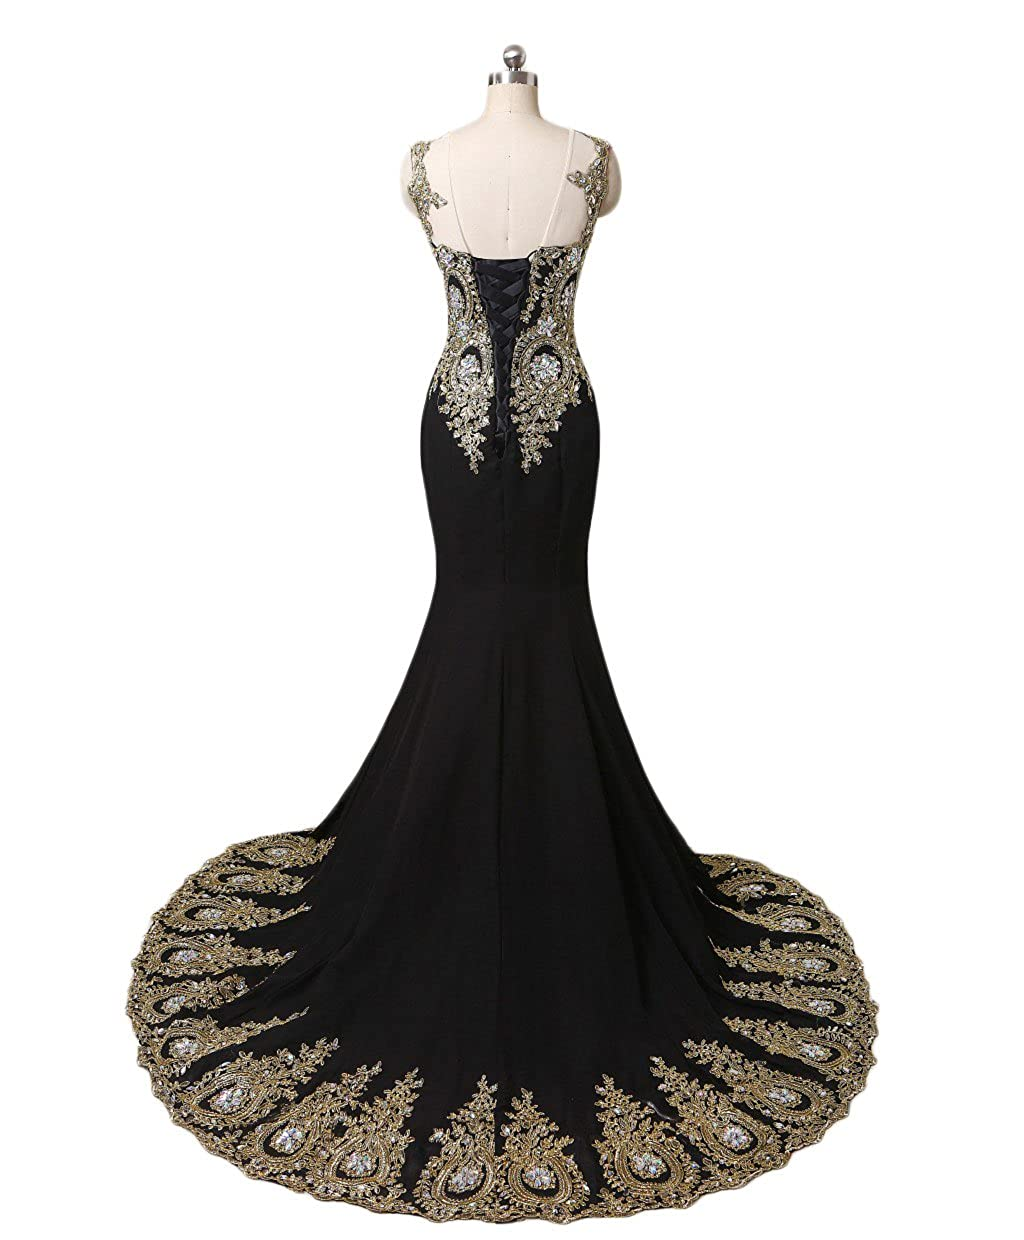 d01af5a8cace Dydsz Long Evening Dresses for Women Formal Prom Dress Mermaid Beaded  Appliques D86: Amazon.ca: Clothing & Accessories